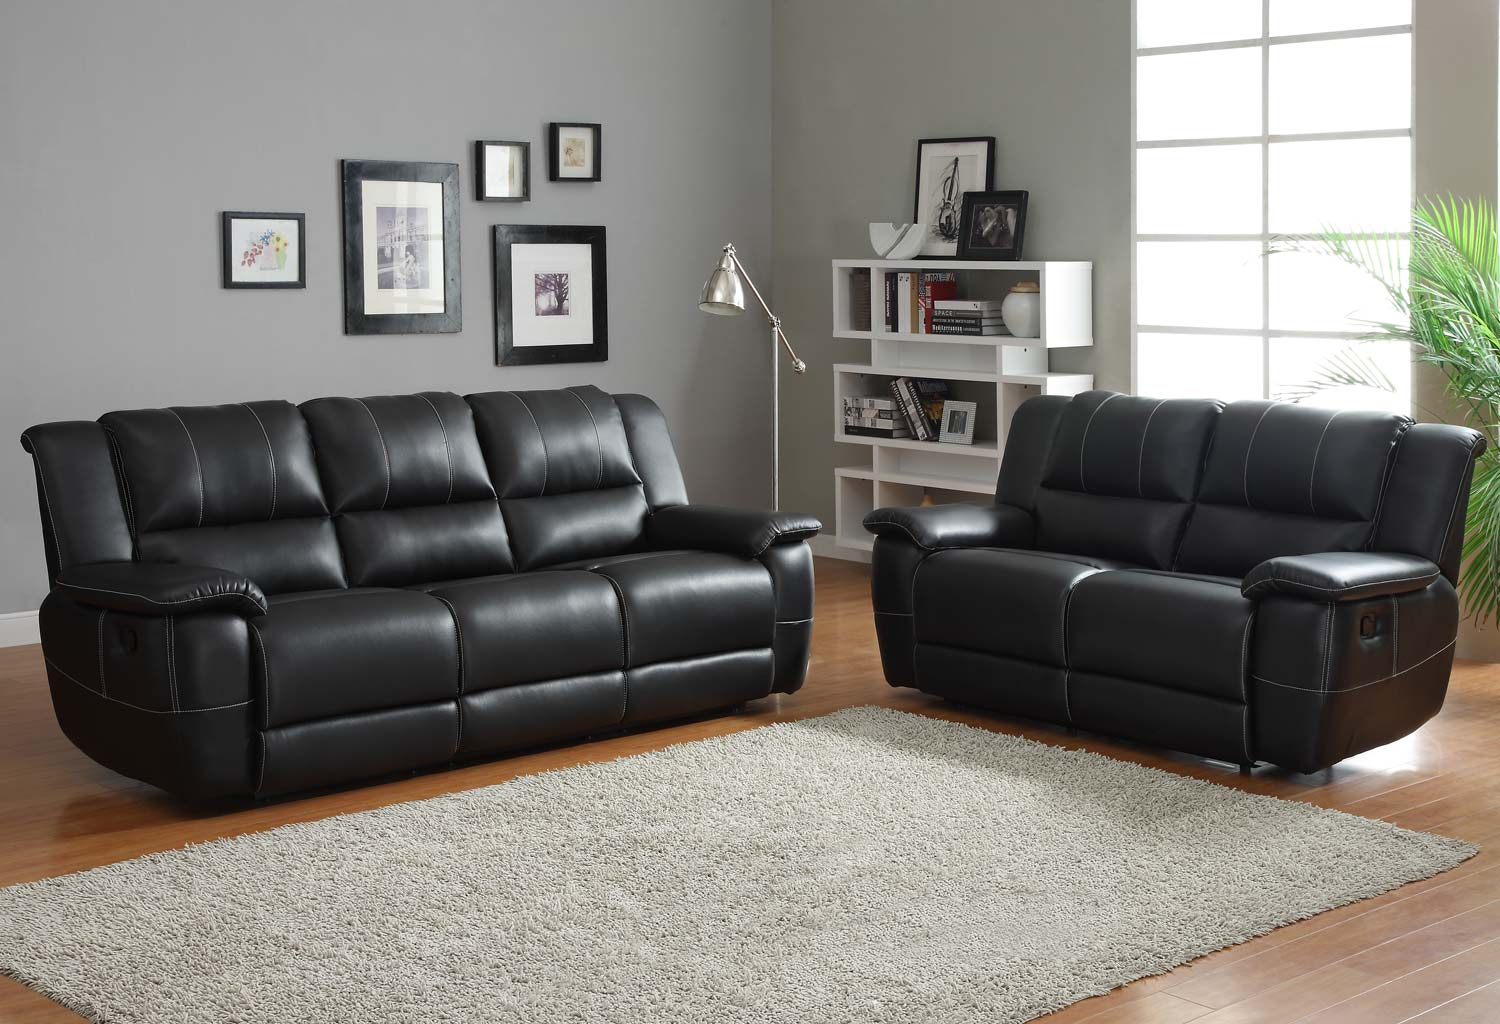 lane home furnishings leather sofa and loveseat from the bowden collection extra large fabric corner sofas uk chairs furniture great living room